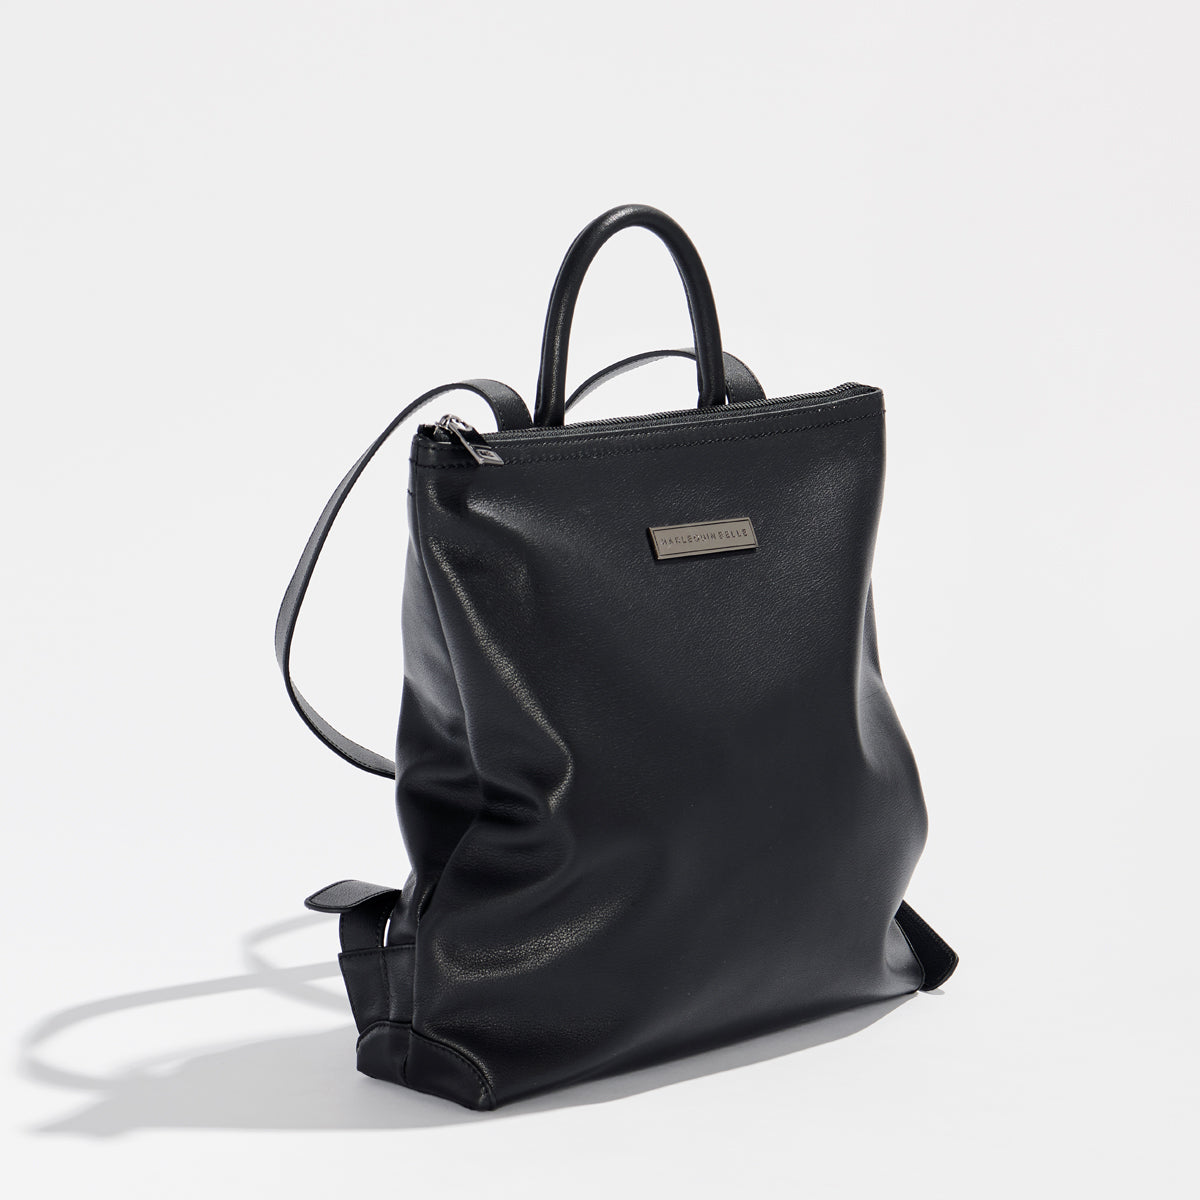 The Collective Backpack - Black - Ex PR Sample